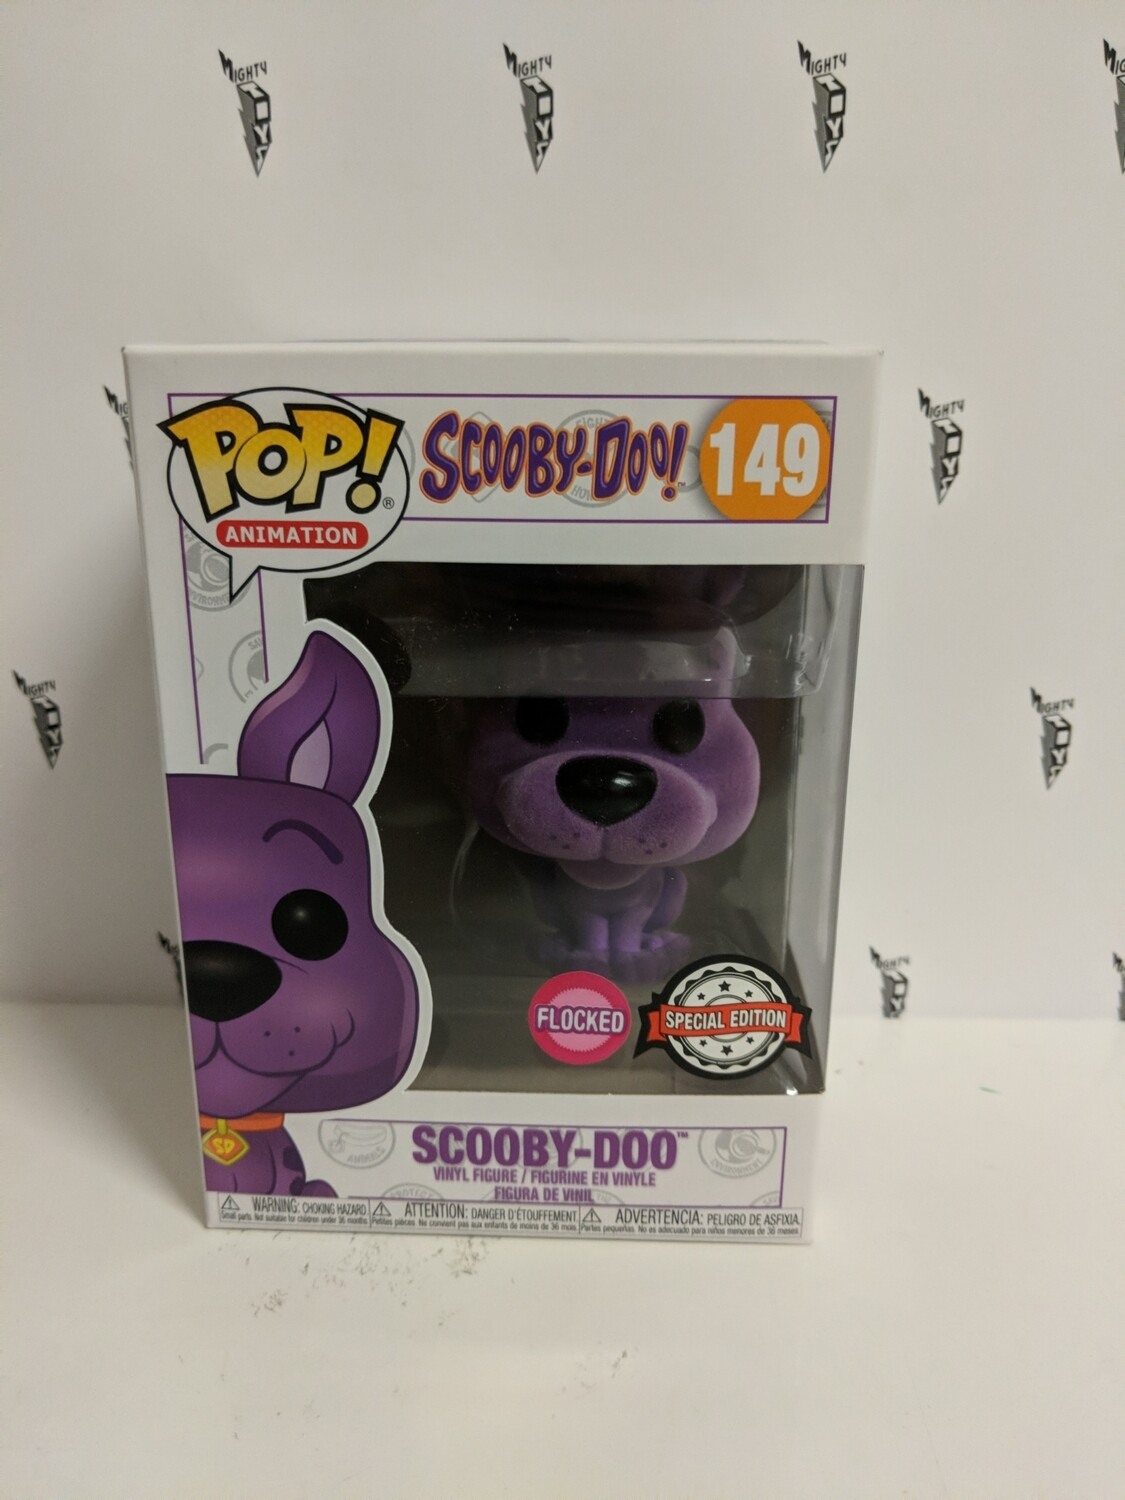 Scooby-Doo - Scooby-Doo Purple Flocked Pop! Vinyl Figure (box damaged)